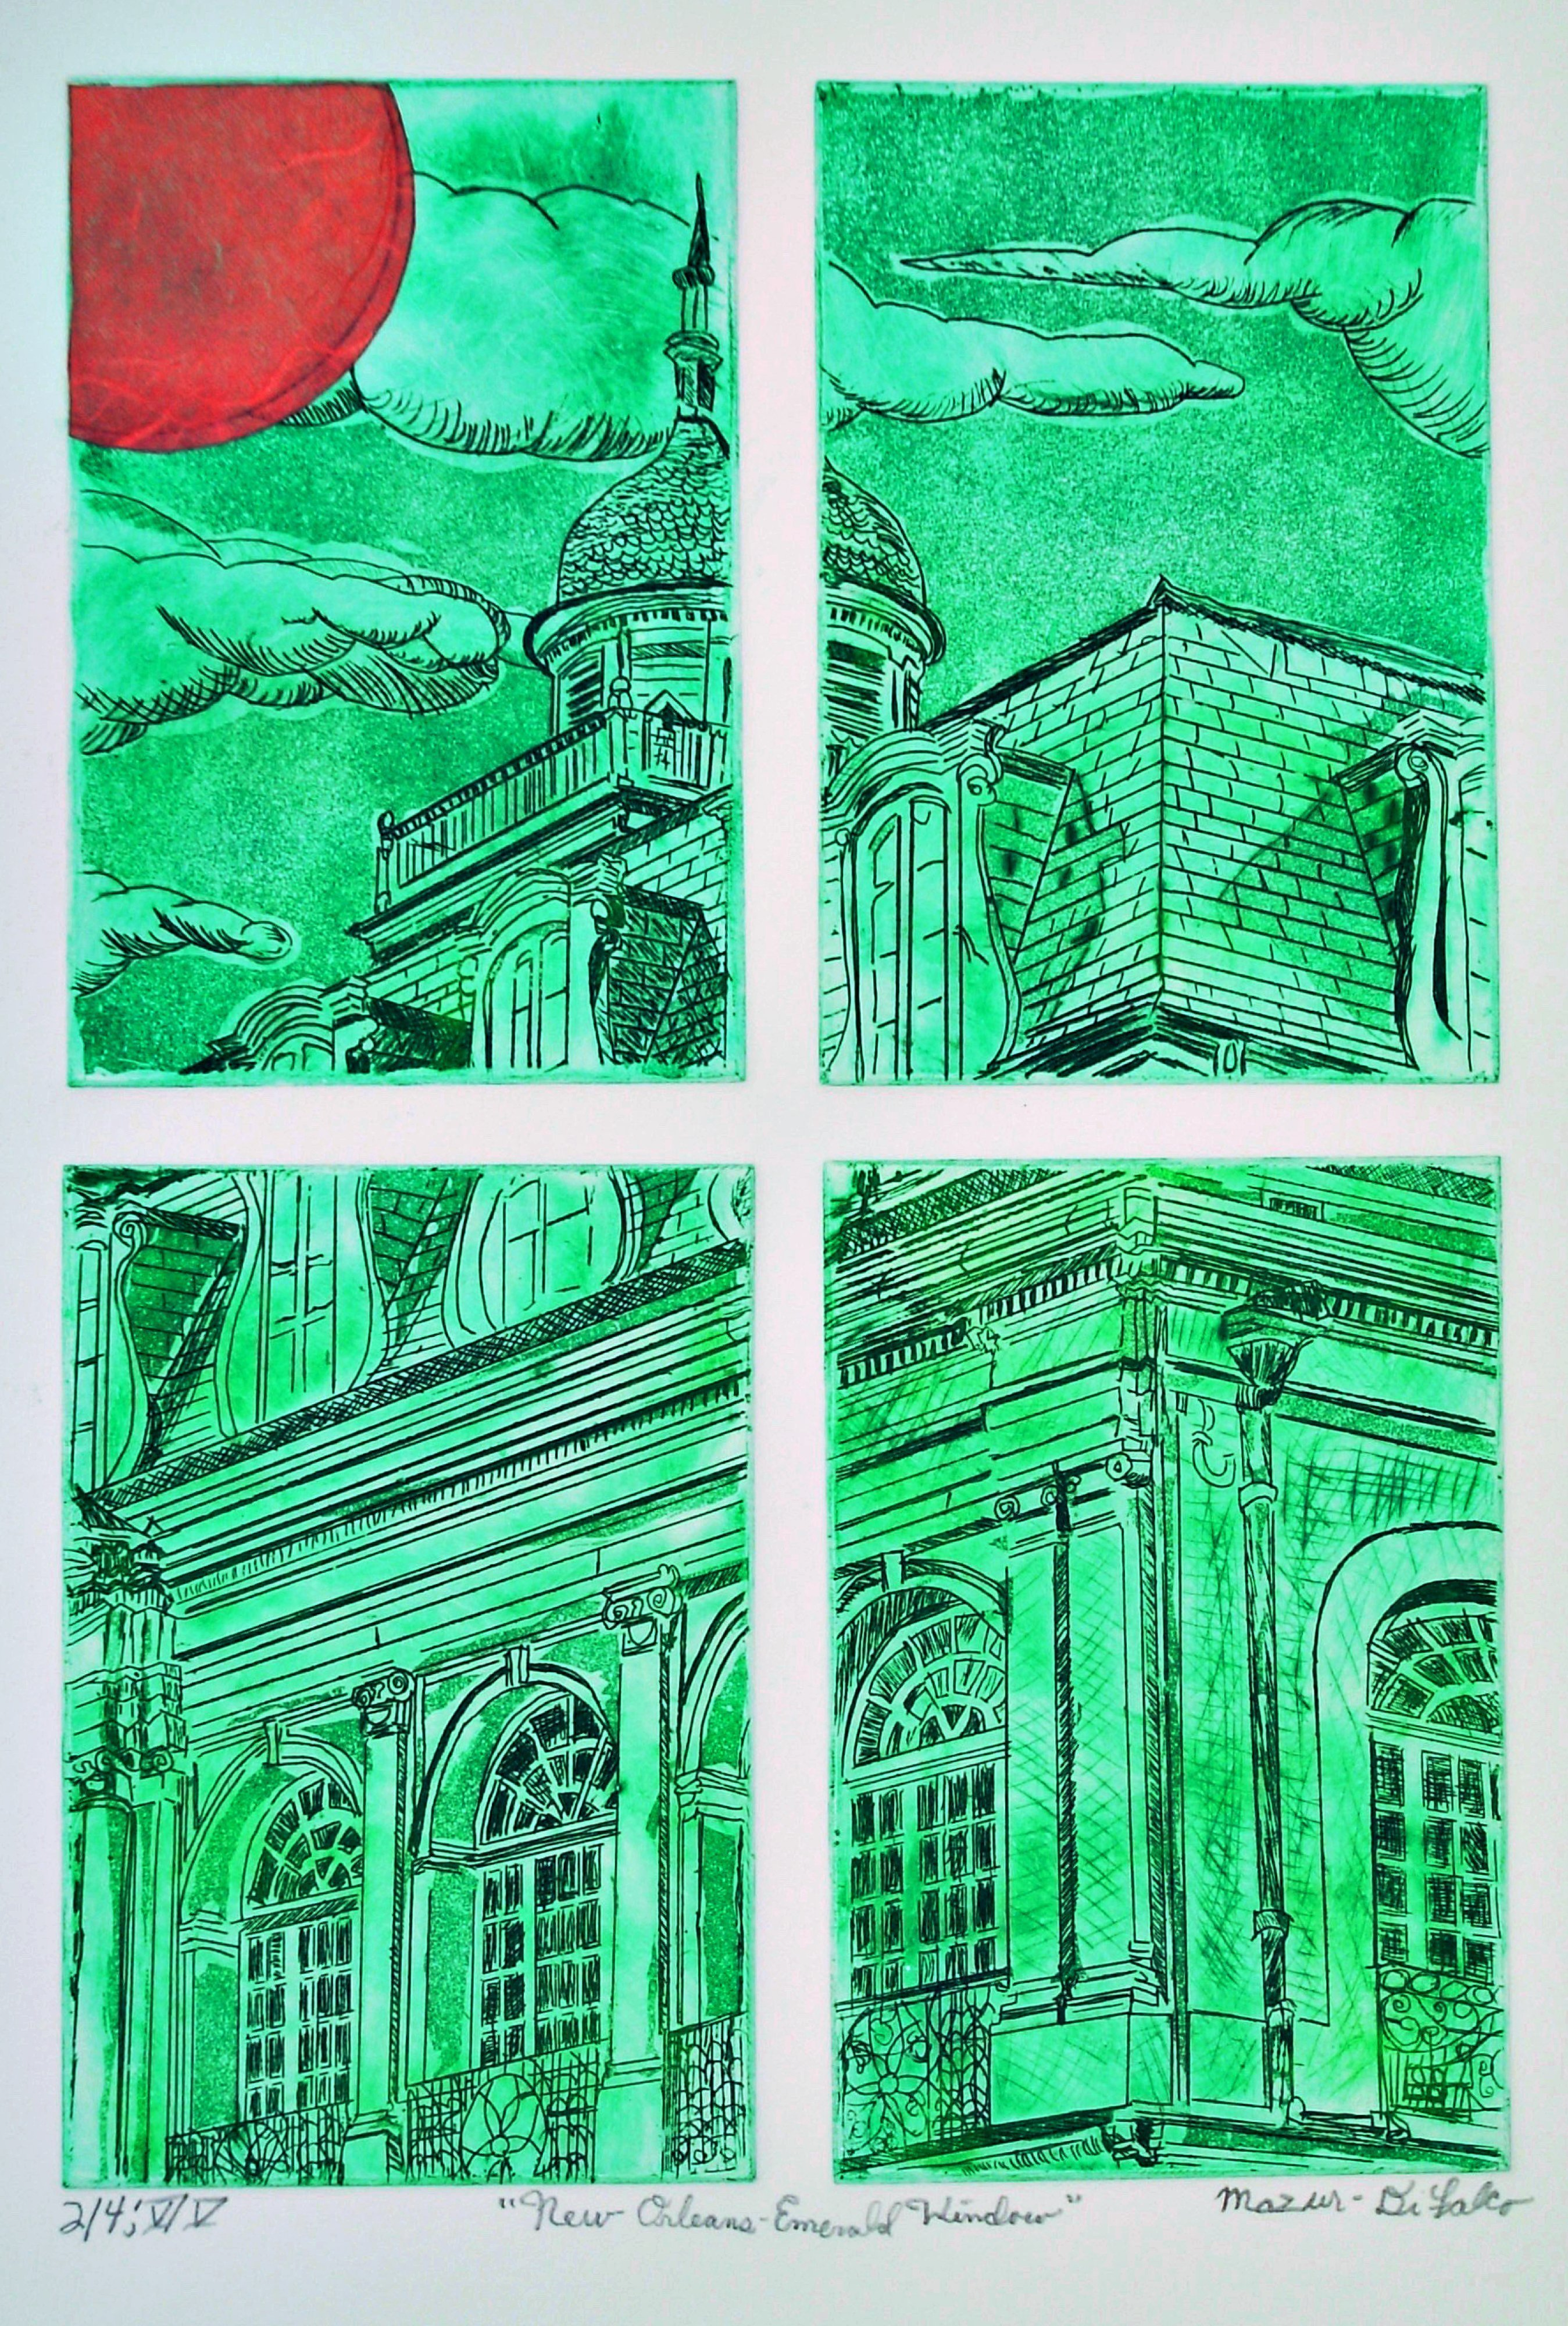 Jerry  Di Falco, 'New Orleans Emerald Window', 2019, original Printmaking Intaglio, 18 x 24  inches. Artwork description: 1911 Jerry Mazur- DiFalco created this distinctive etching via the employment of four separate zinc plates, which were placed simultaneously on the printing press bedaEUR